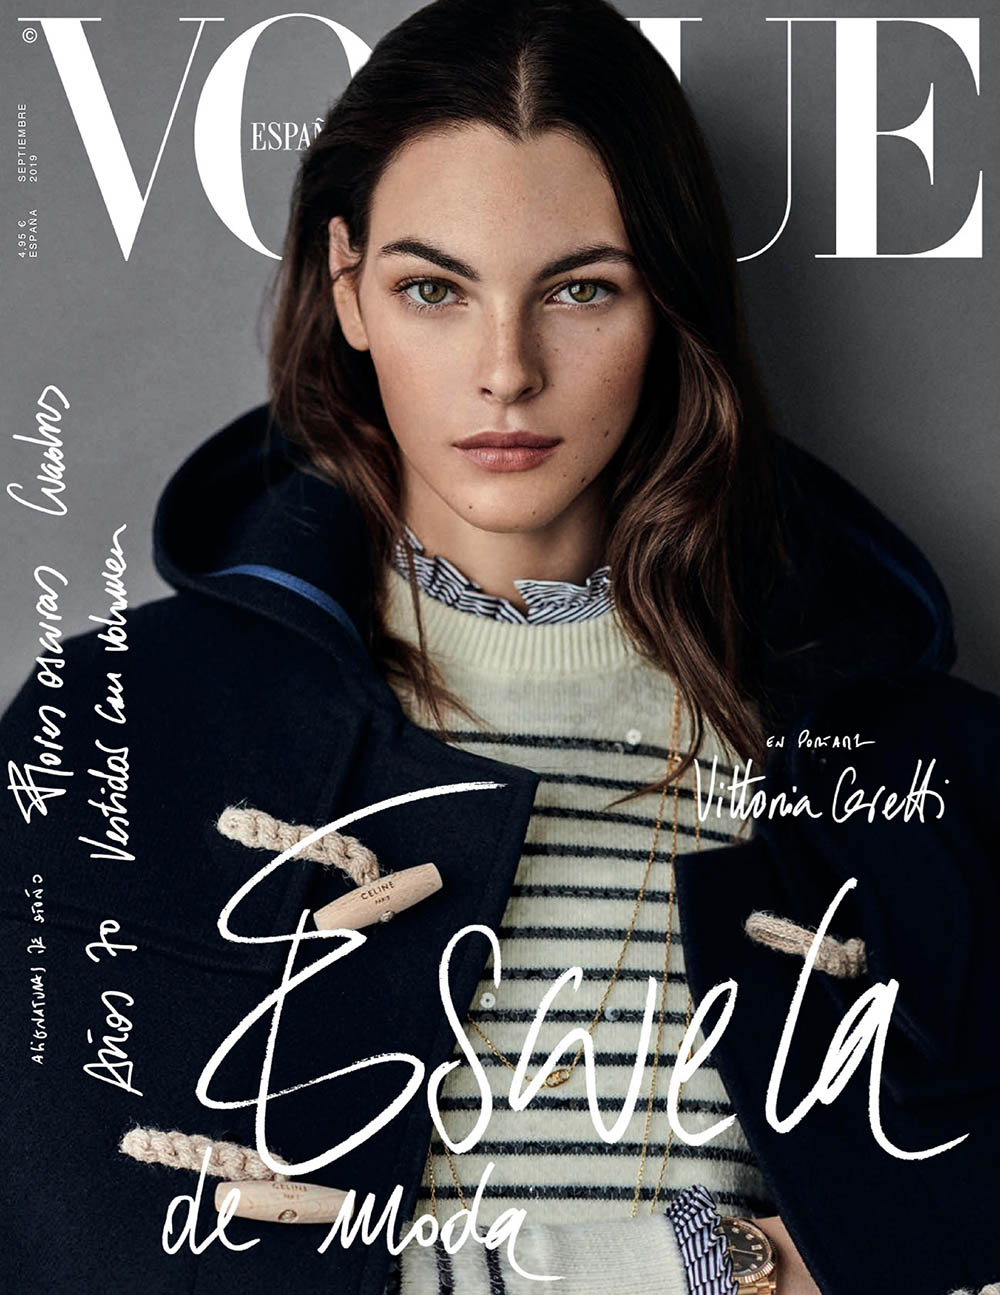 Vittoria Ceretti covers Vogue Spain September 2019 by Giampaolo Sgura